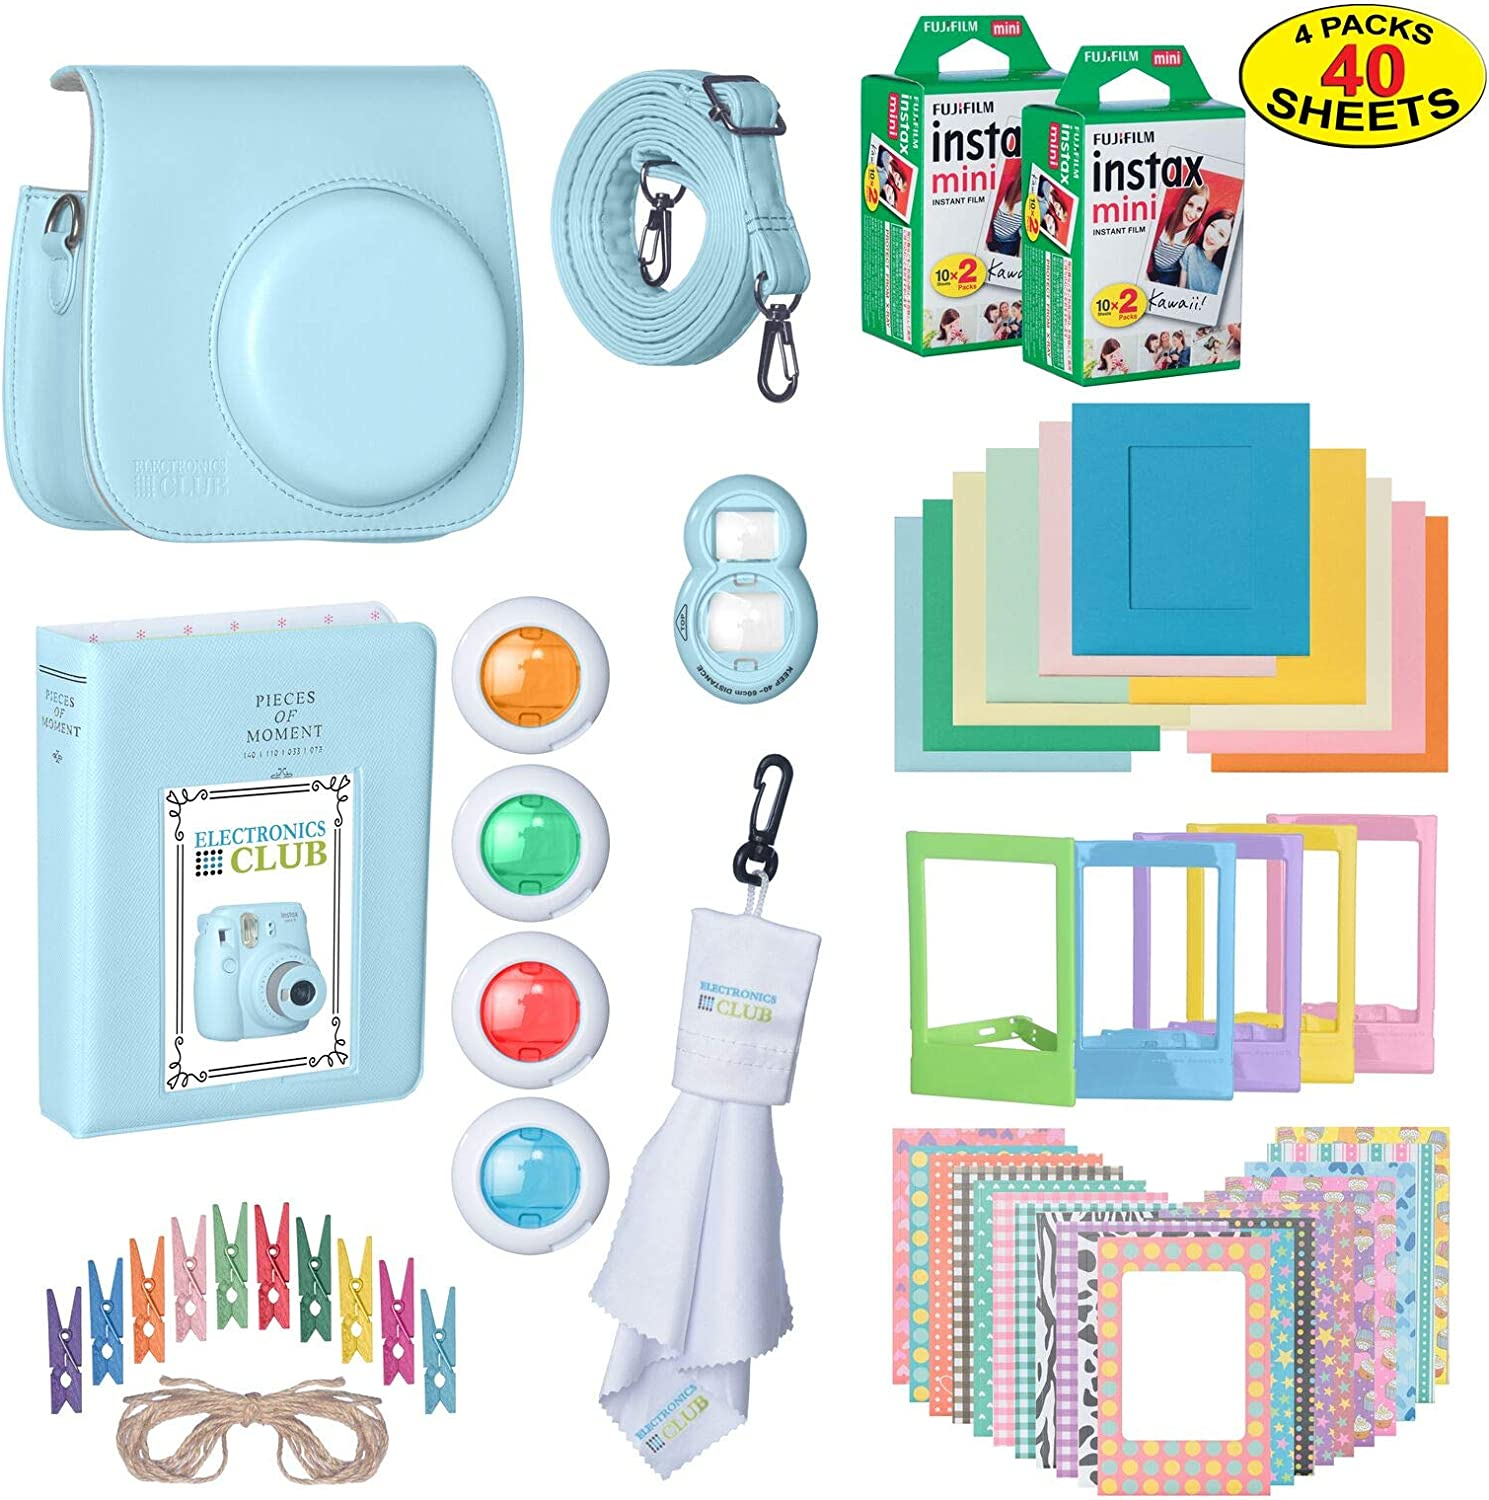 The Ultimate Accessories Kit Bundle for Fujifilm Instax Mini 9 Instant Film Camera | Includes Leather Camera Case + 40 Sheets of Instant Film + Photo Album + Frames + Close-Up Selfie Lenses + More…